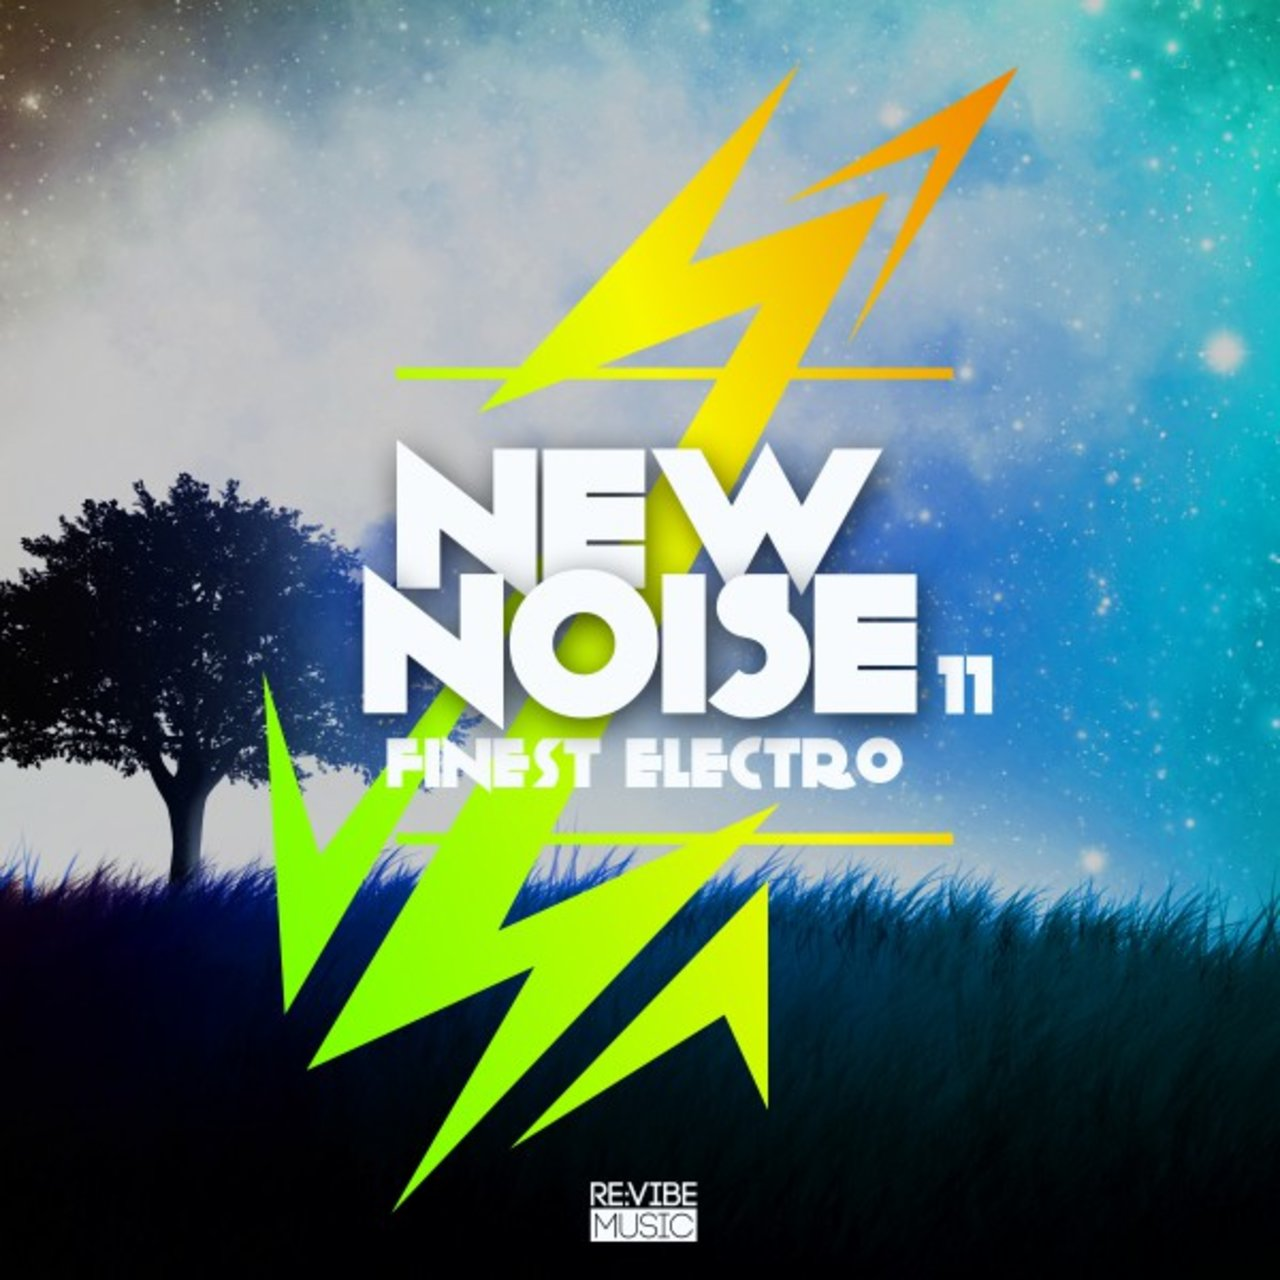 New Noise - Finest Electro, Vol. 11